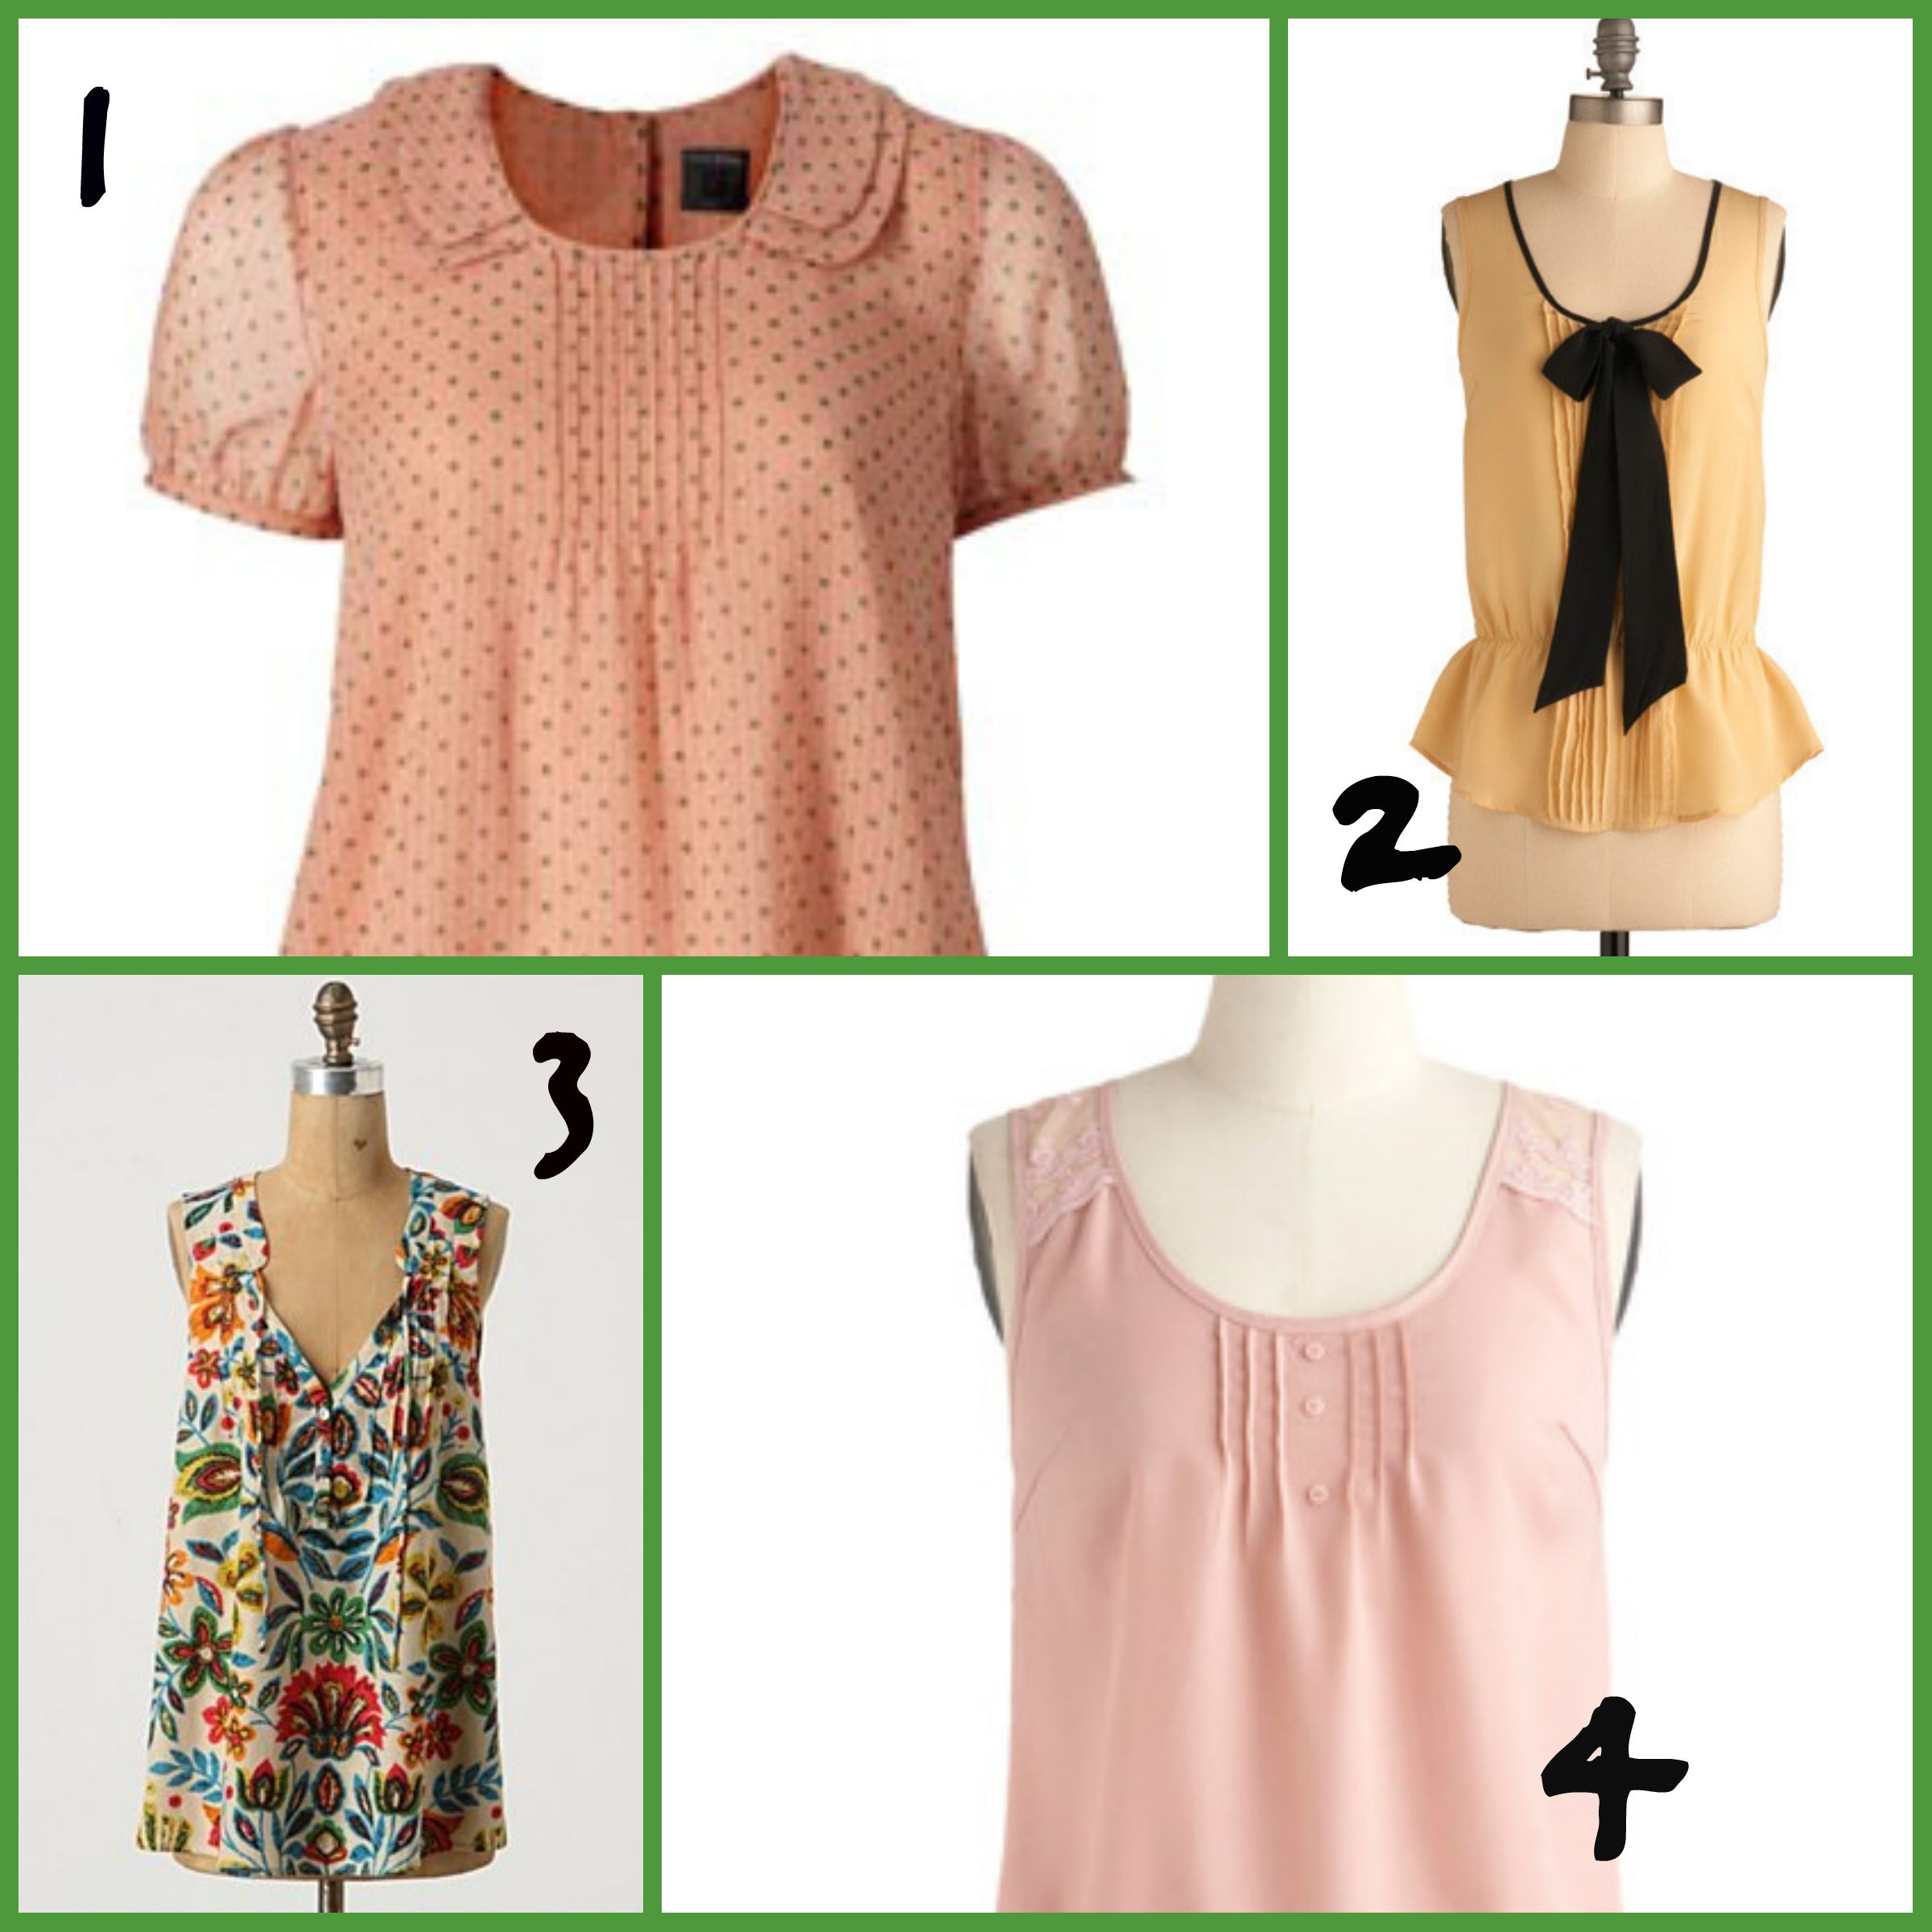 Patterns of tops with pintucks inspiration pintucks pressure patterns of tops with pintucks inspiration pintucks jeuxipadfo Image collections